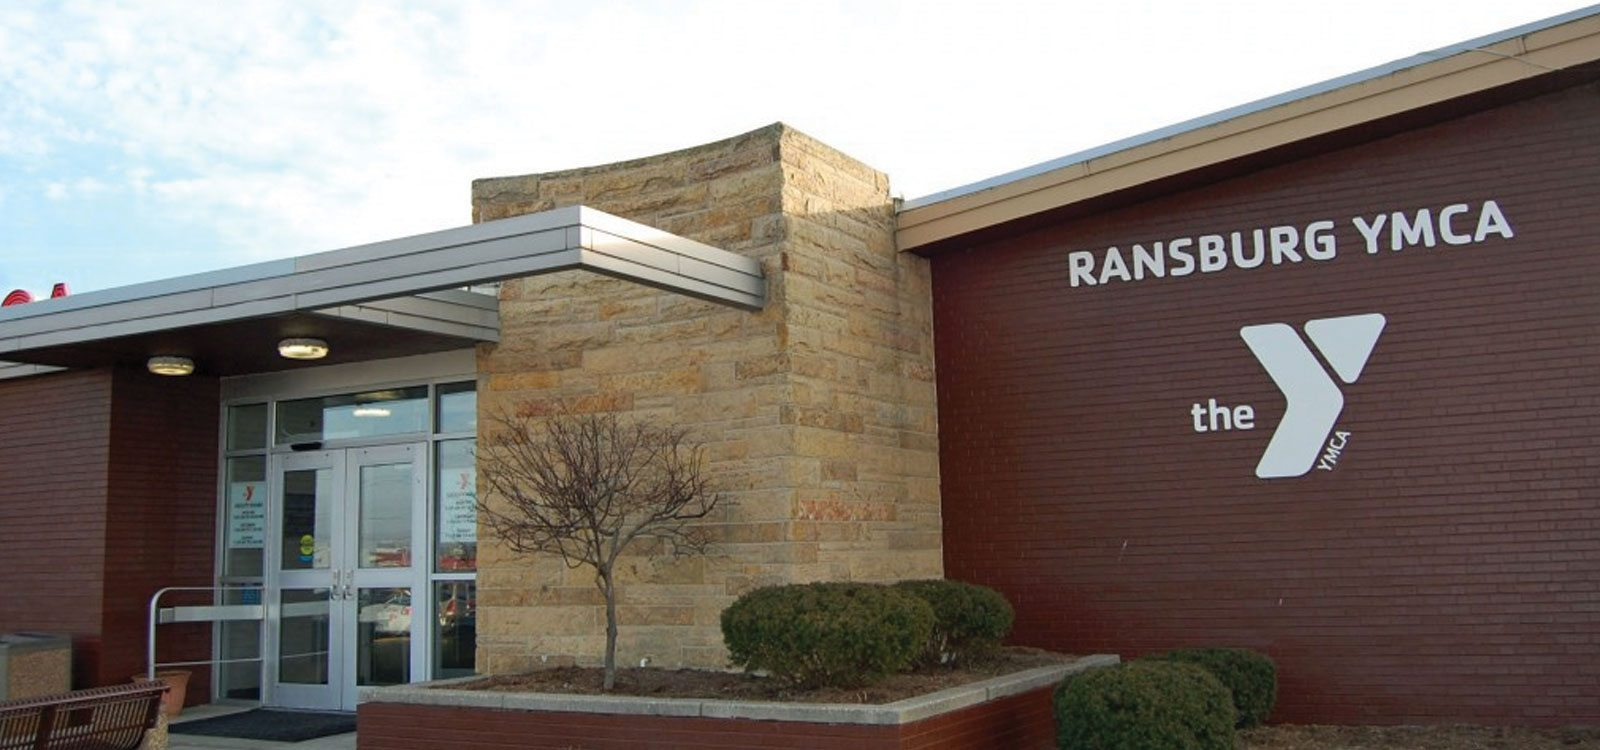 Home | Ransburg YMCA | YMCA of Greater Indianapolis